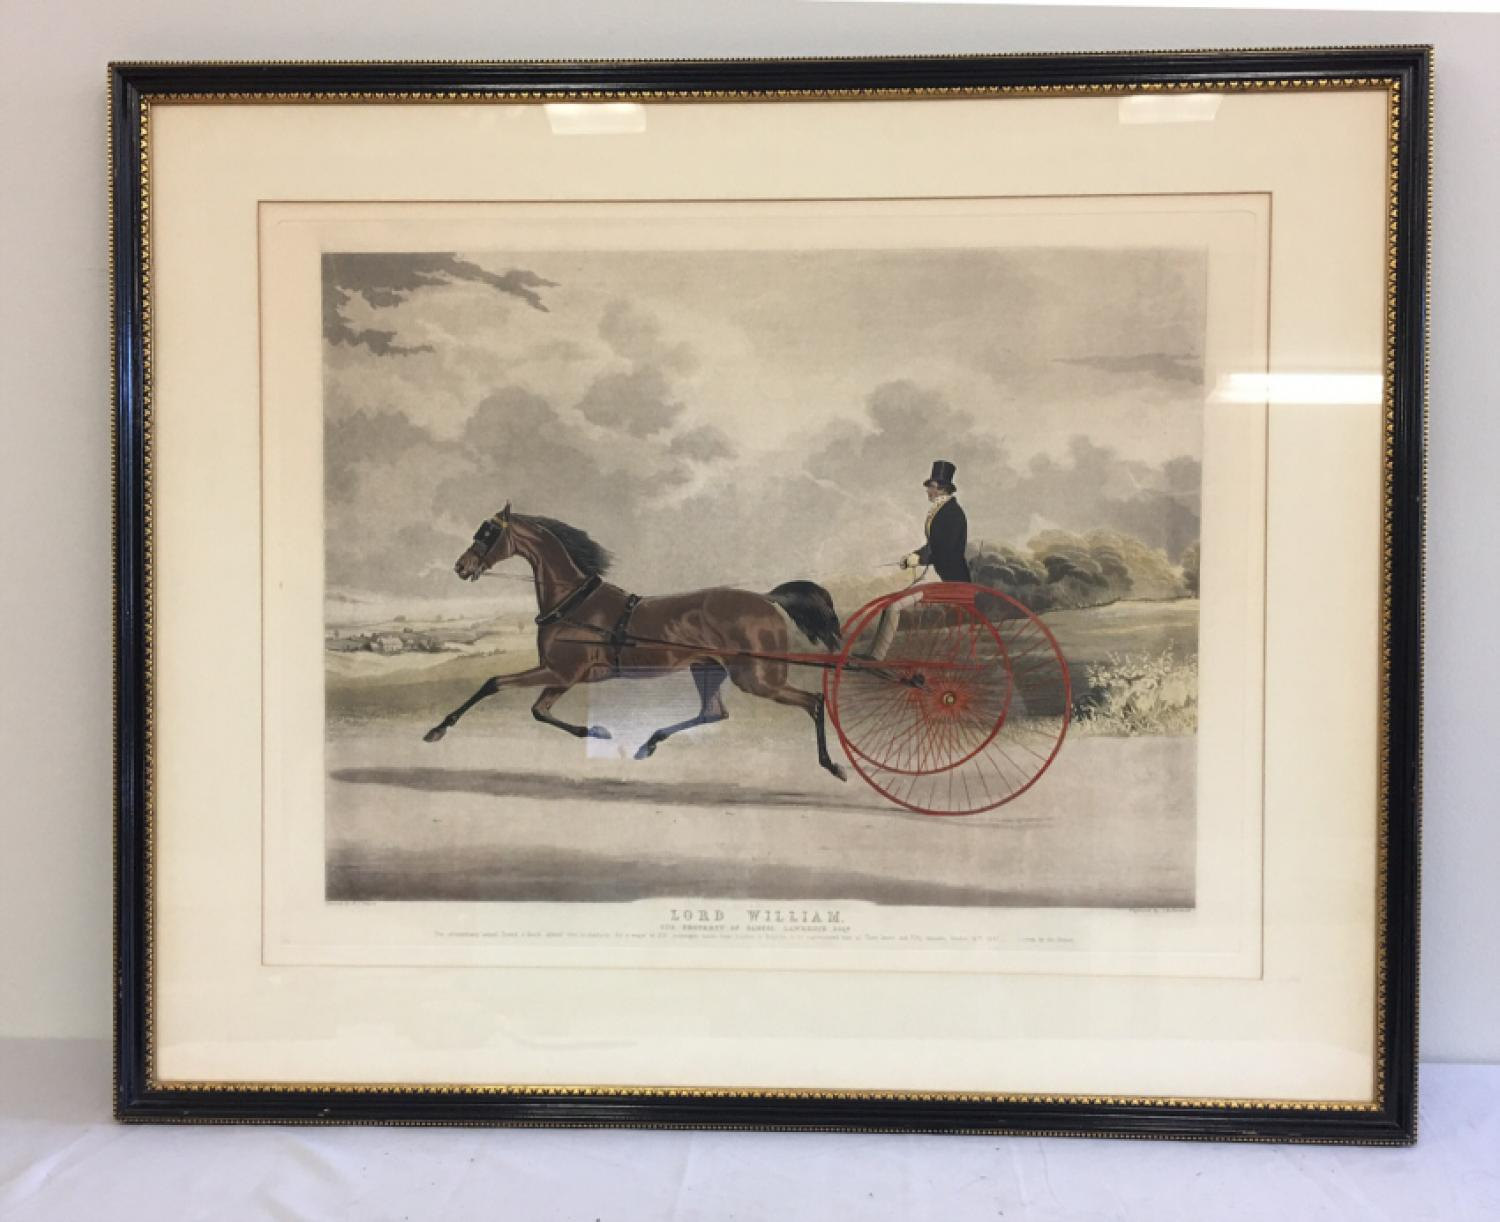 Lord William sulky trotter aquatint c1845